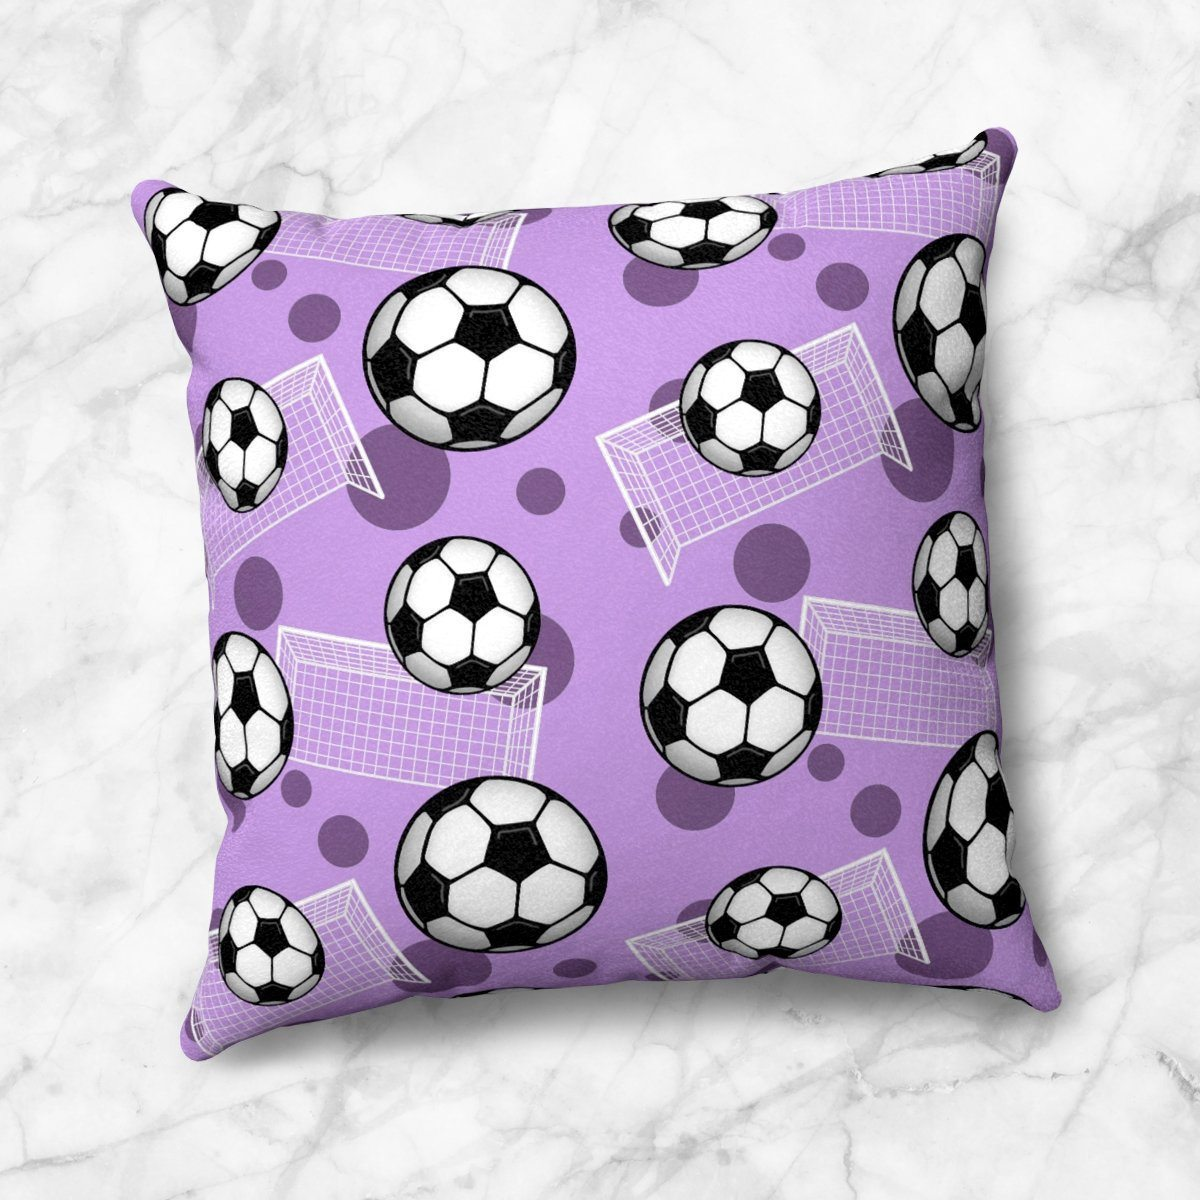 Soccer Ball and Goal Pattern Purple Throw Pillow at Speckle Rock